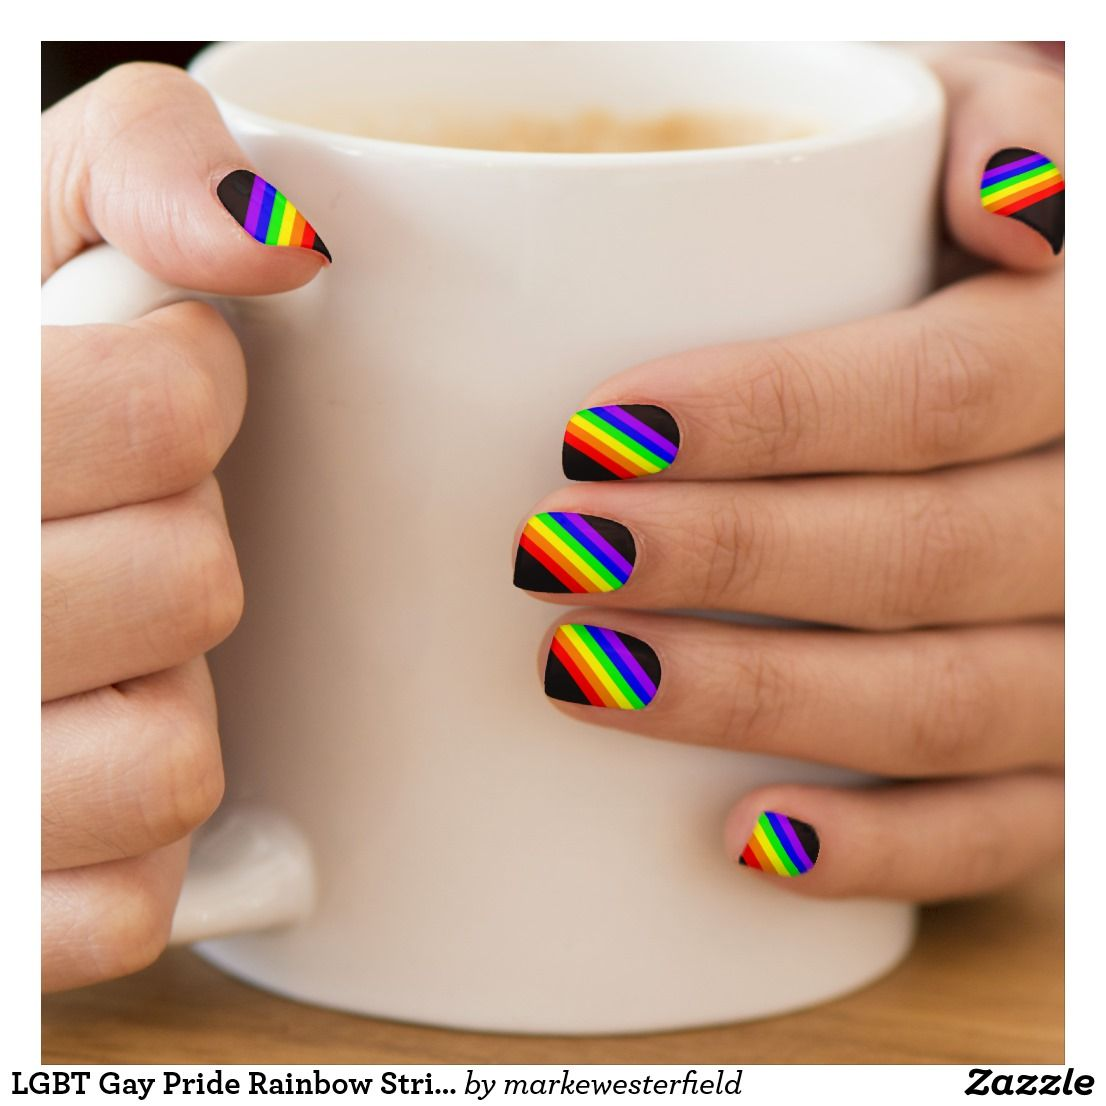 LGBT Gay Pride Rainbow Stripe Minx Nail Art | Zazzle.com